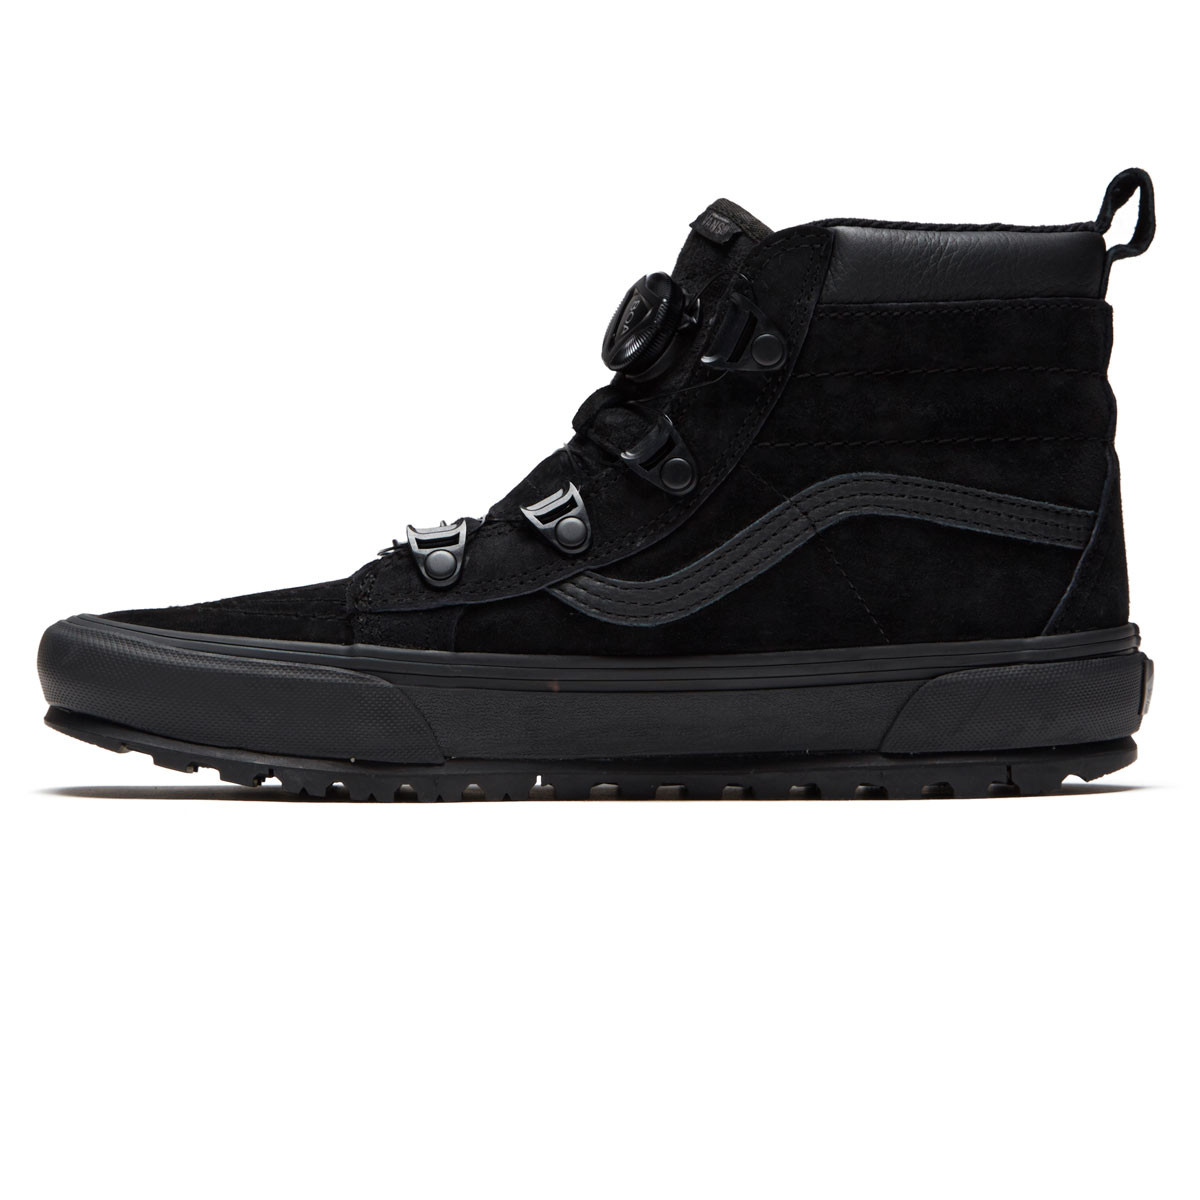 888f72a73a1ee4 Vans Sk8-Hi MTE BOA Shoes - Black - 10.0